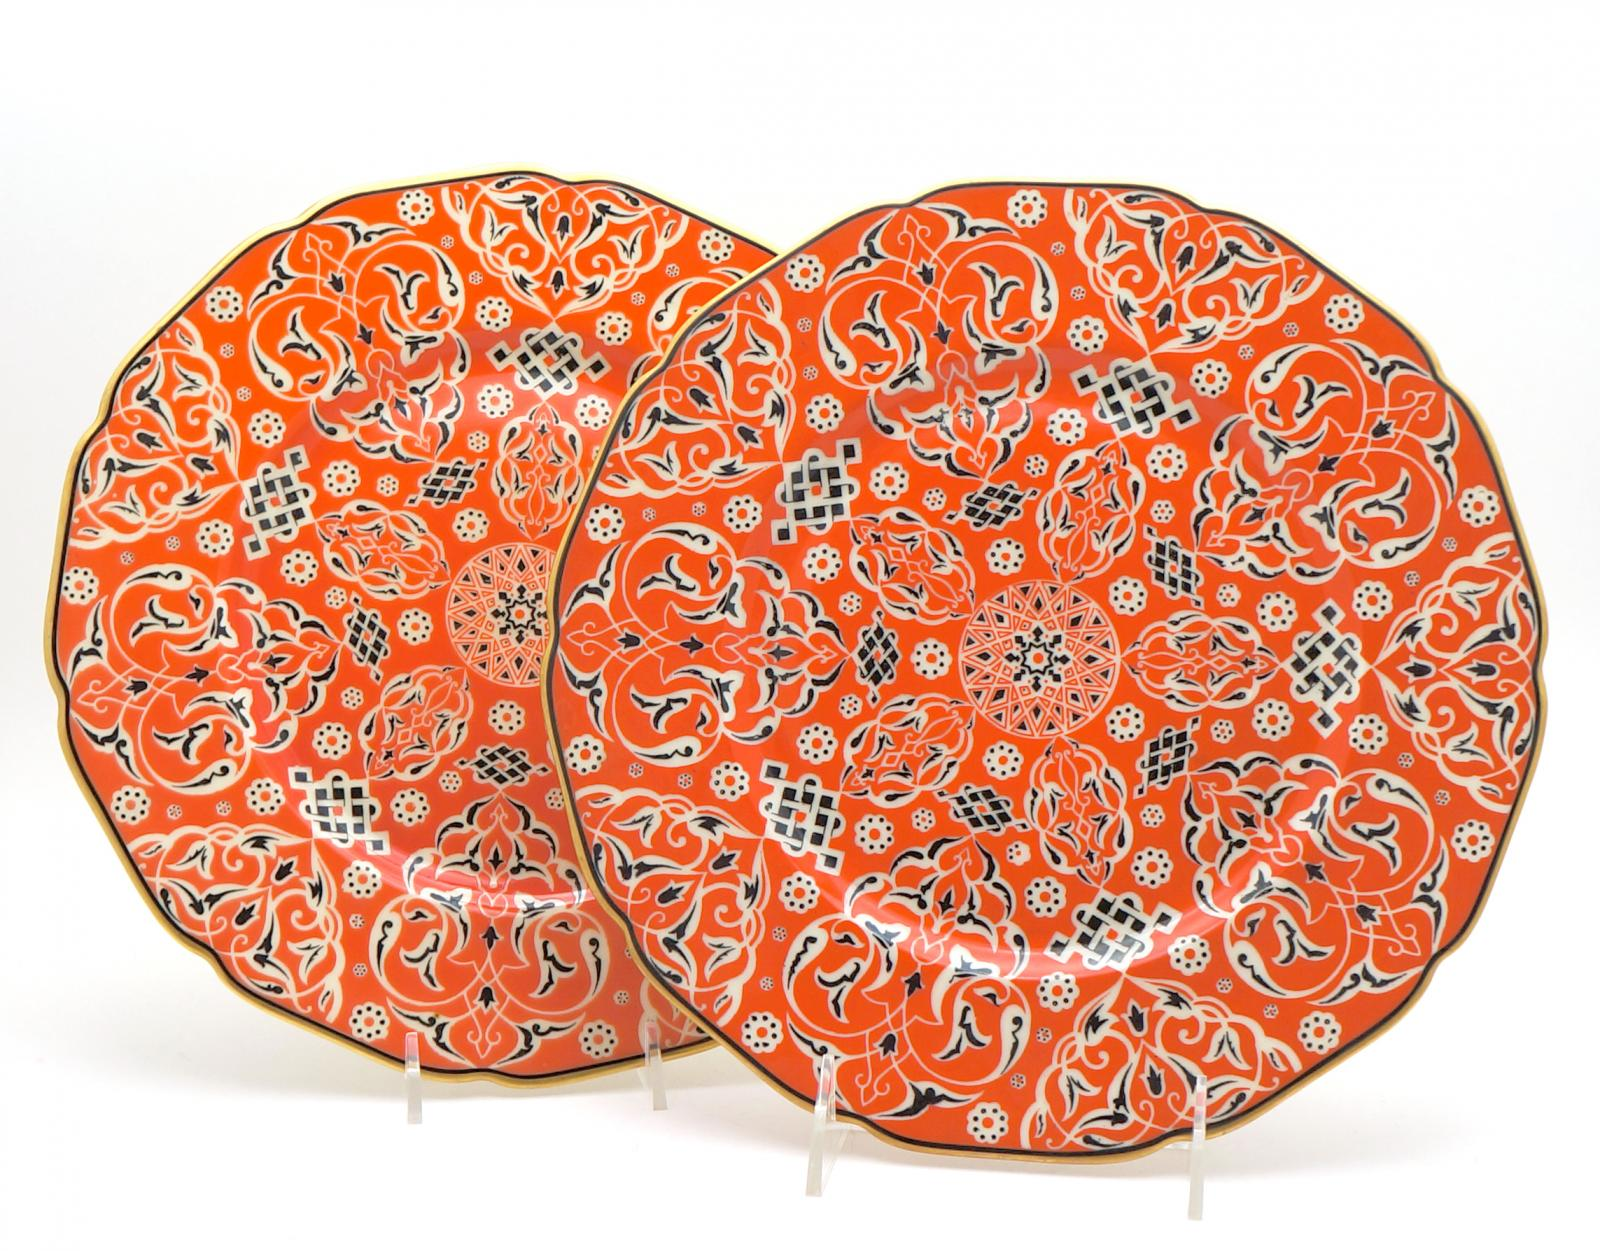 10 Unusual Arts & Crafts Shaped Rim Orange Dinner Plates | Dinner ...